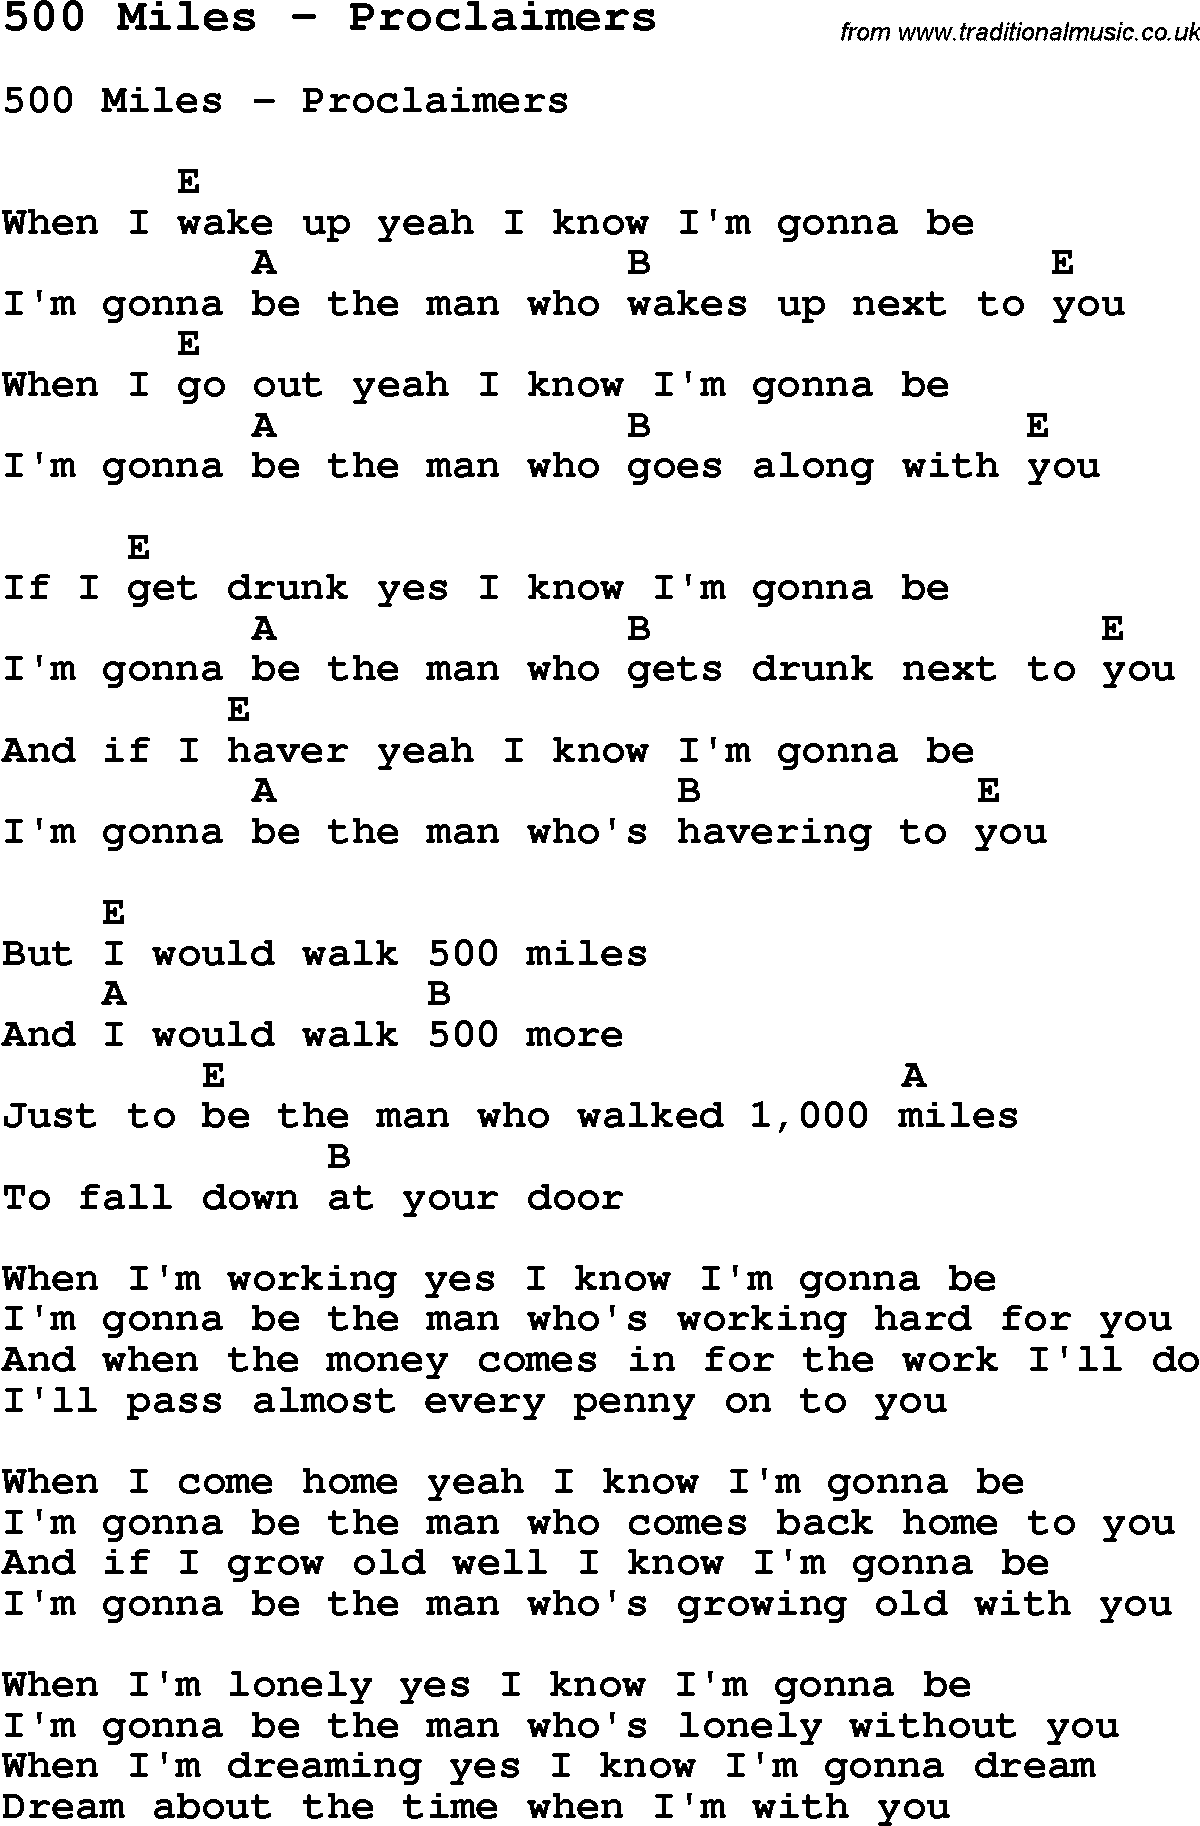 Song 15 Miles by Proclaimers, with lyrics for vocal performance ...